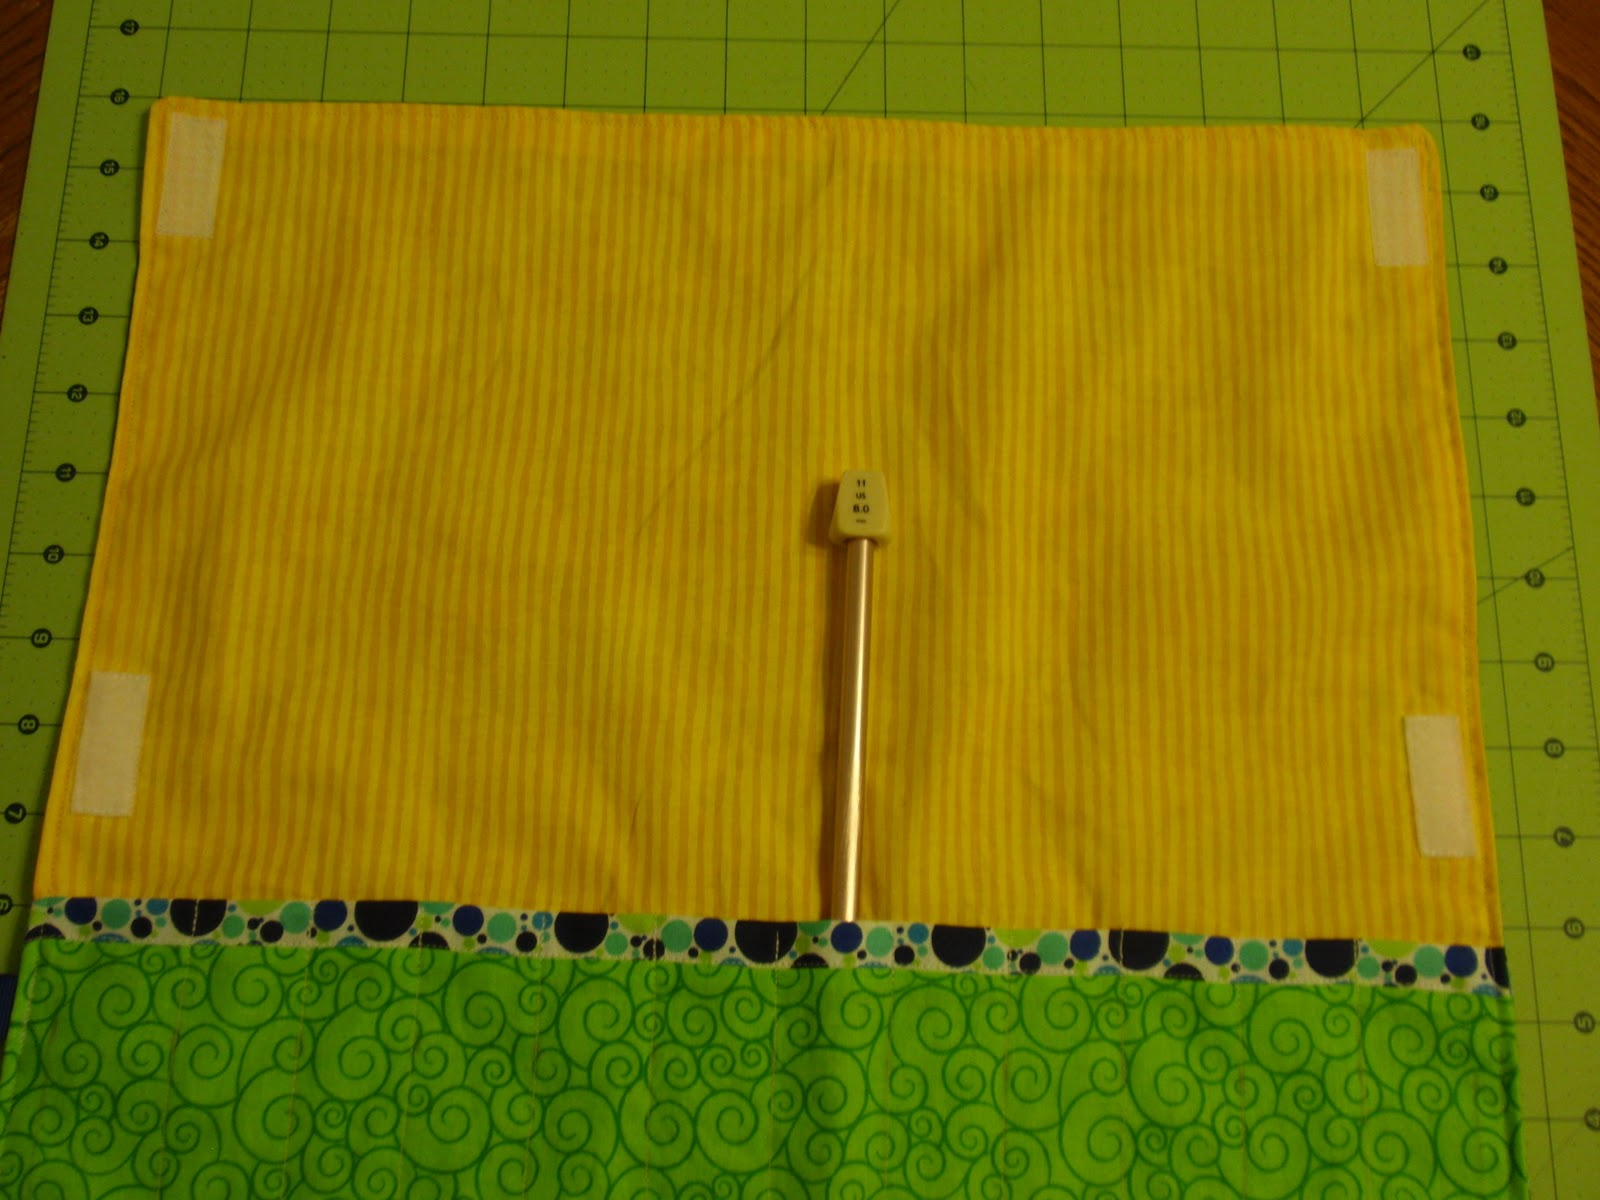 Diary of a Crafty Lady: Knitting Needle Roll up Holder - Tutorial